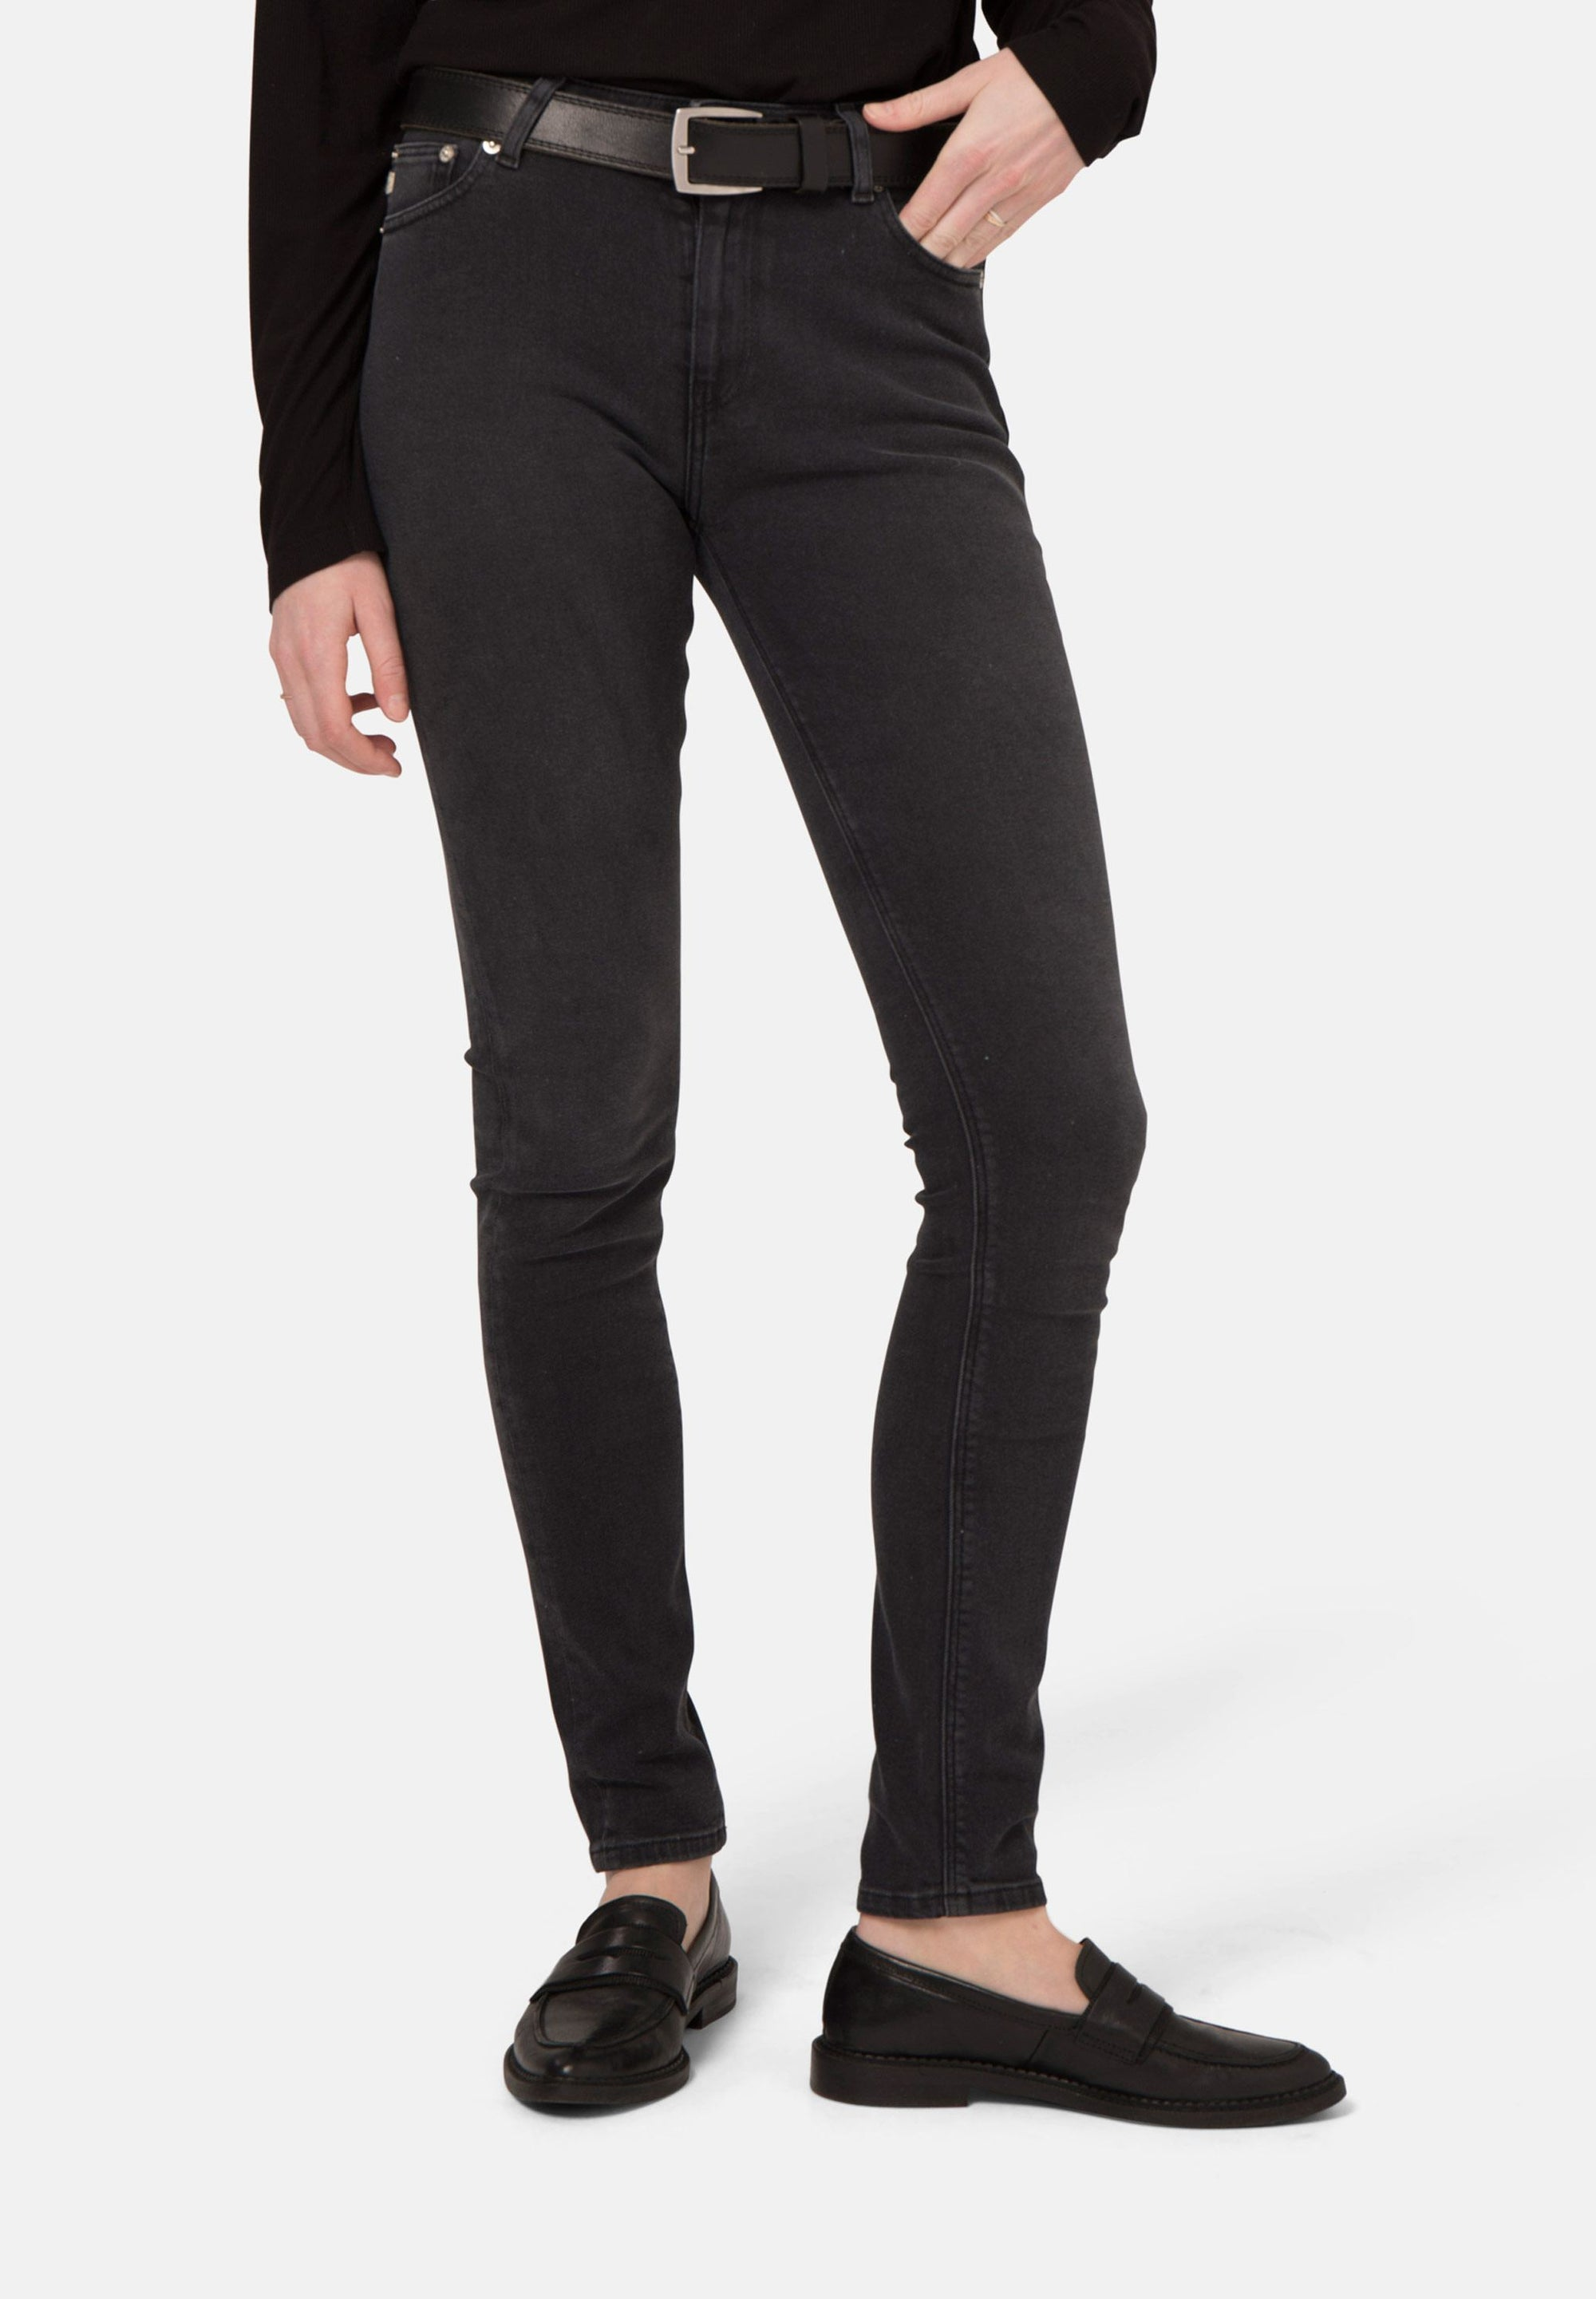 Skinny Hazen Jeans | Stone Black | Bottoms | Mud Jeans | [product_tag] - Fair Bazaar Ethical Living